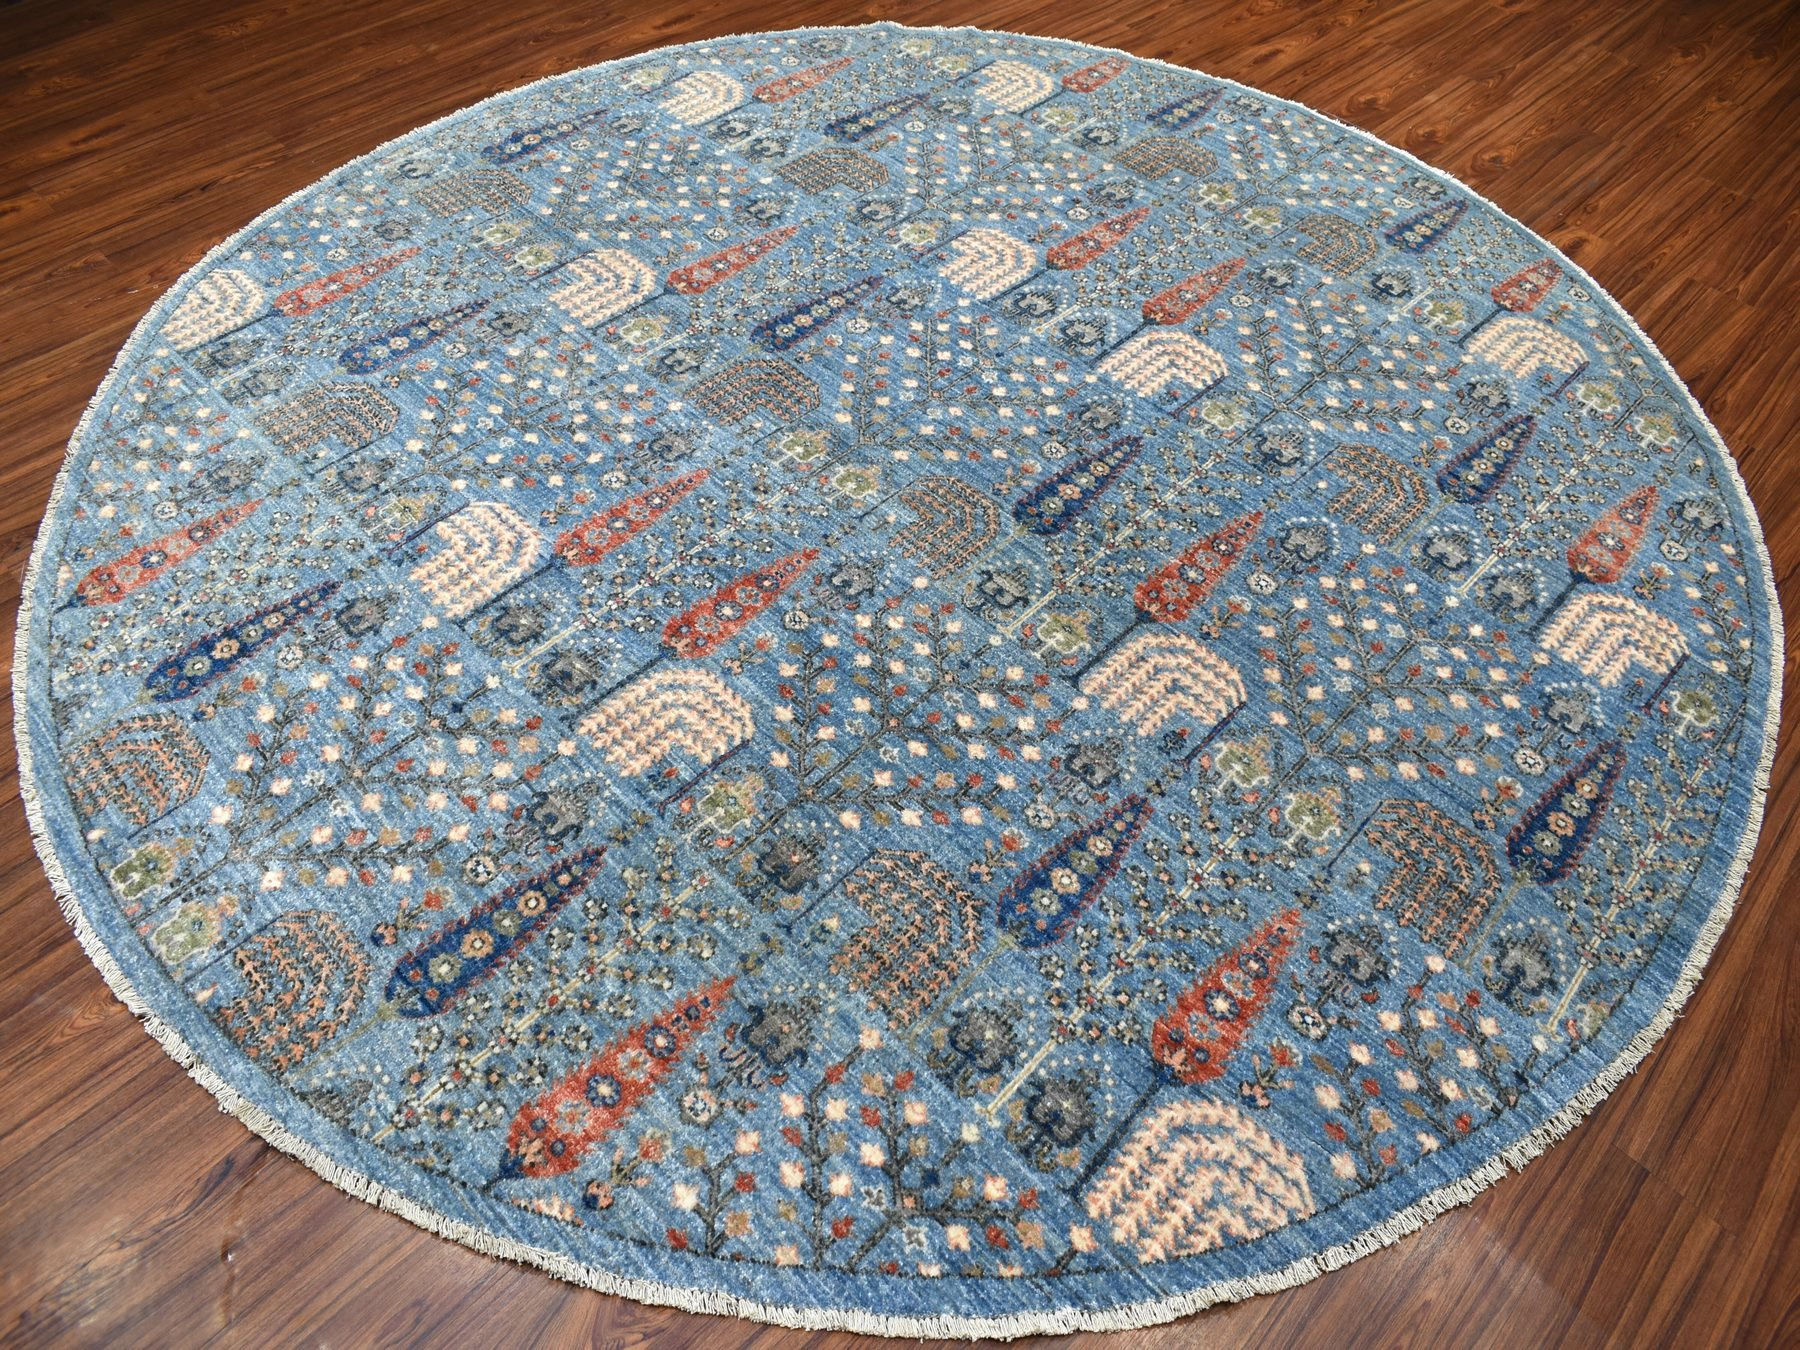 Transitional Wool Hand-Knotted Area Rug 9'4